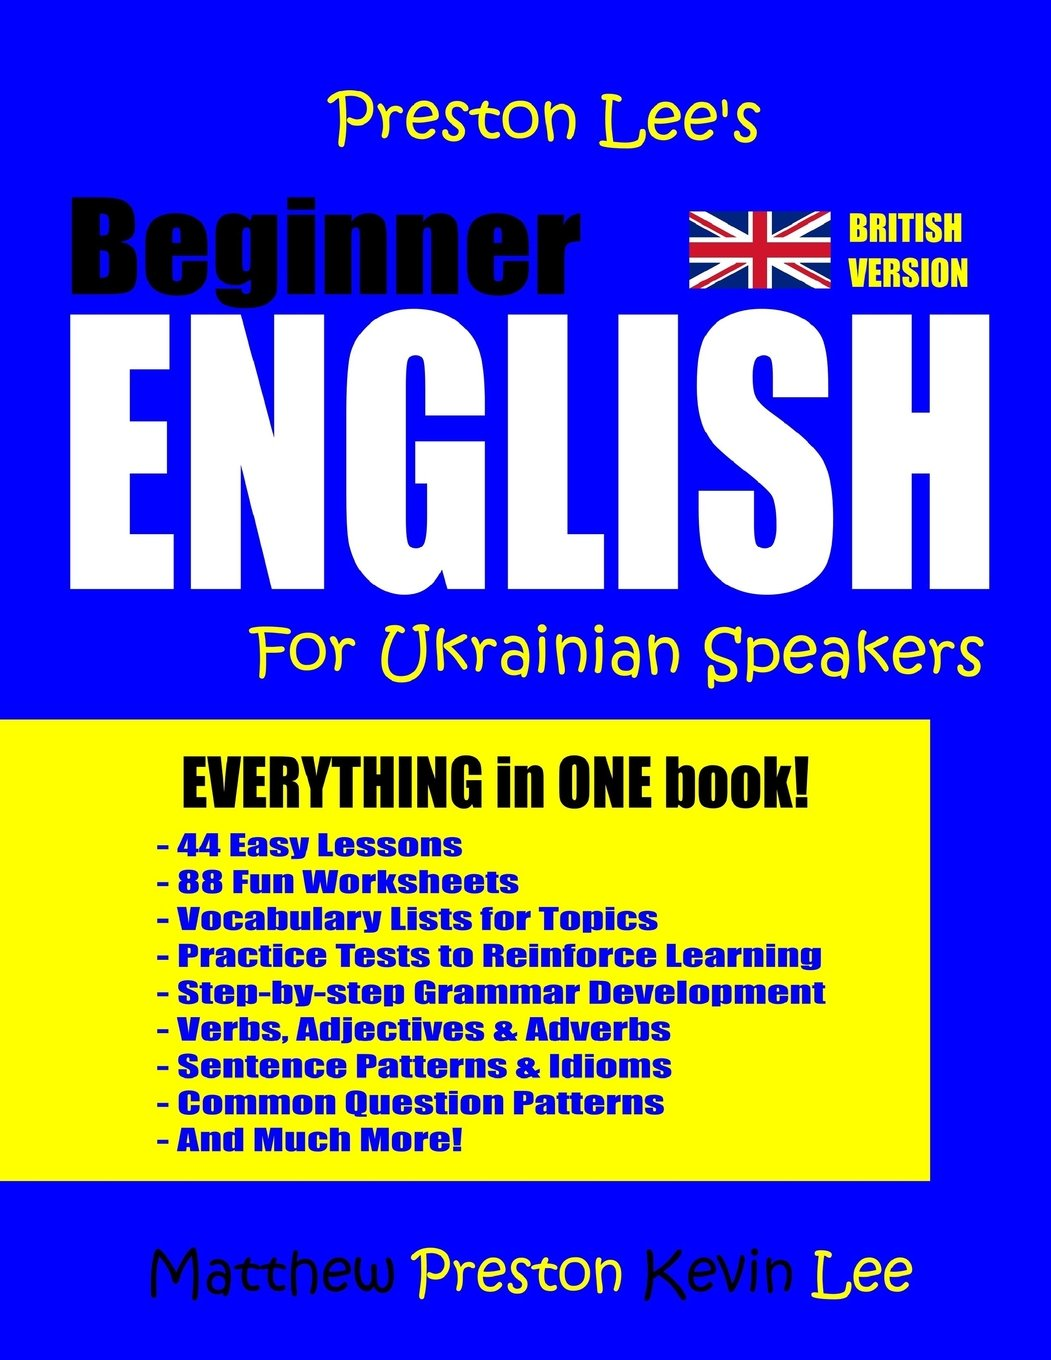 Download Preston Lee's Beginner English For Ukrainian Speakers (British) PDF